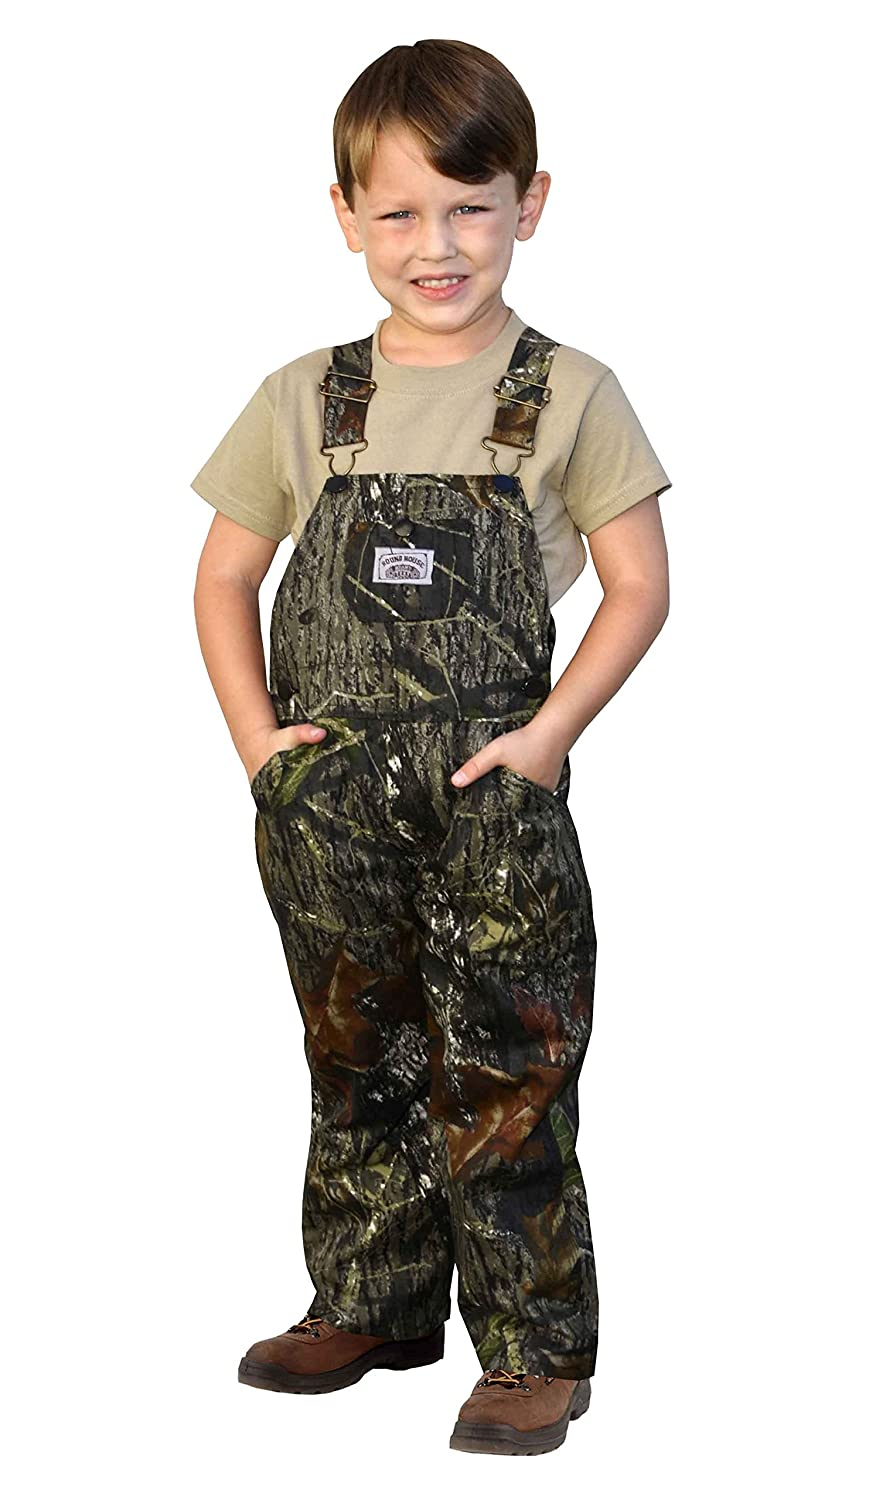 Round House Little Boys Mossy Oak Camo Bib Overalls - Made in USA